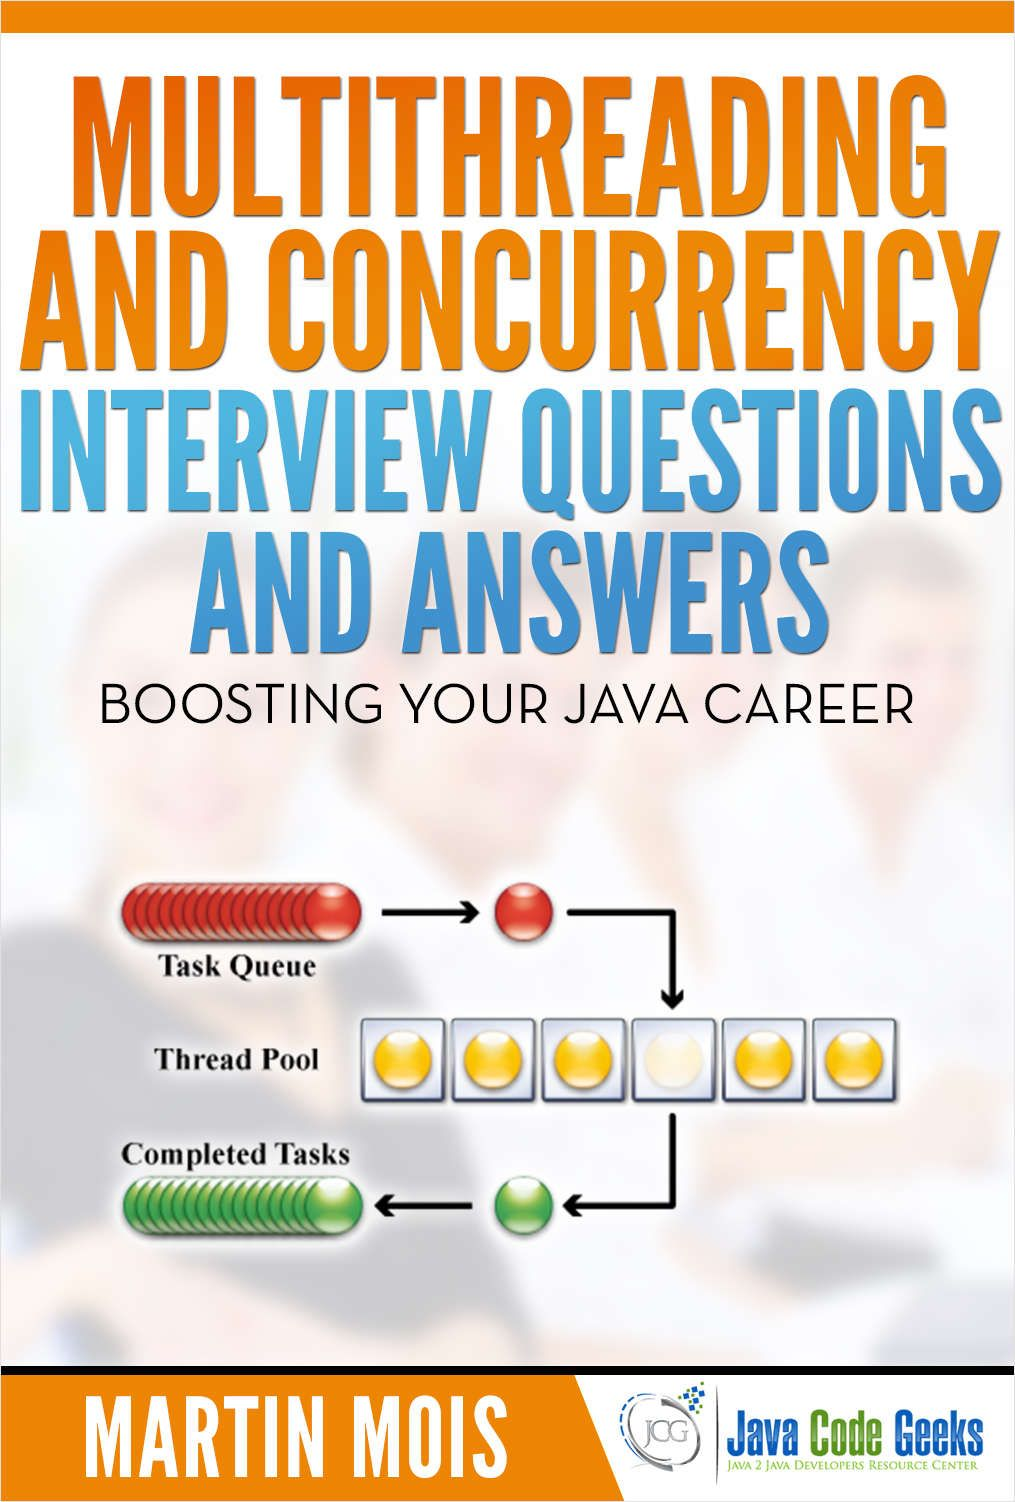 Multithreading and Concurrency Interview Questions and